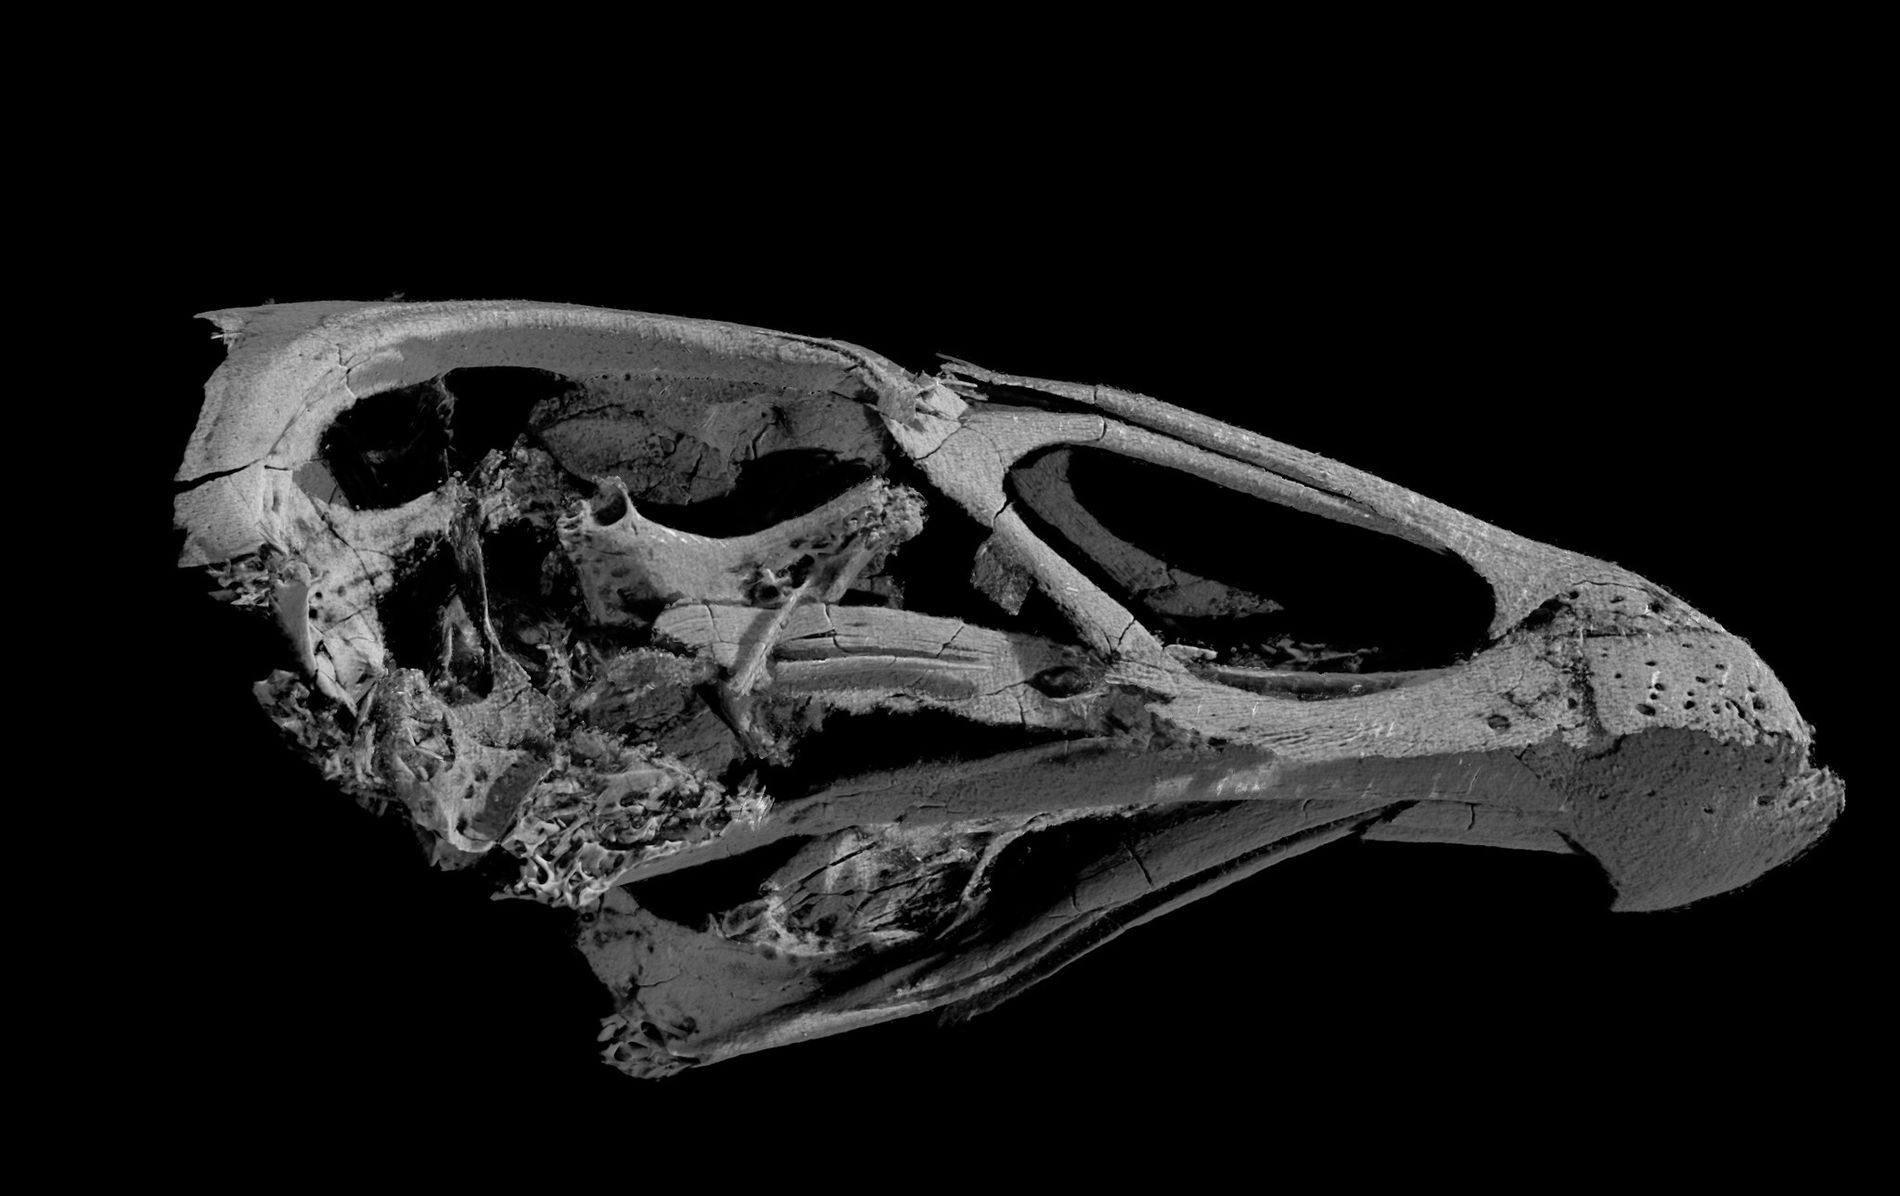 A 3D image of the skull of the oldest known modern bird, Asteriornis maastrichtensis.